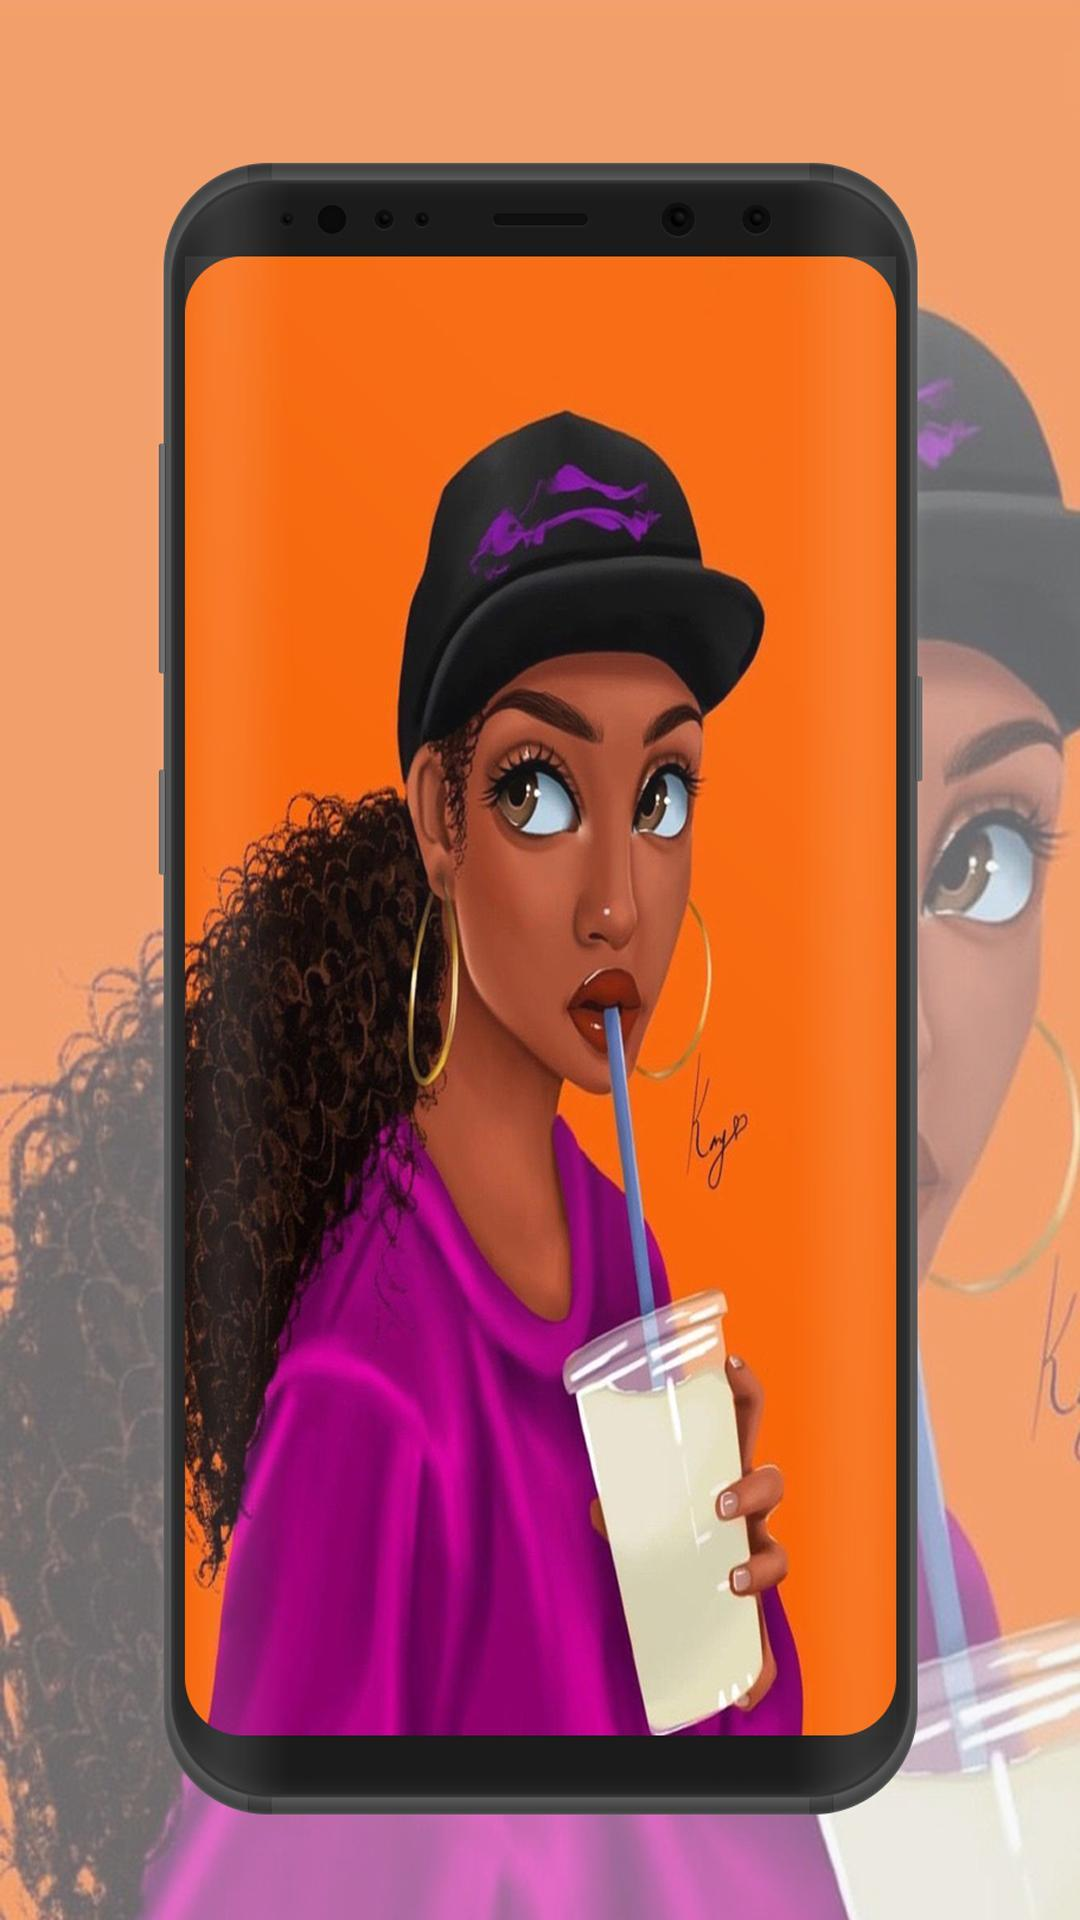 Cute Black Girly Wallpaper For Android Apk Download